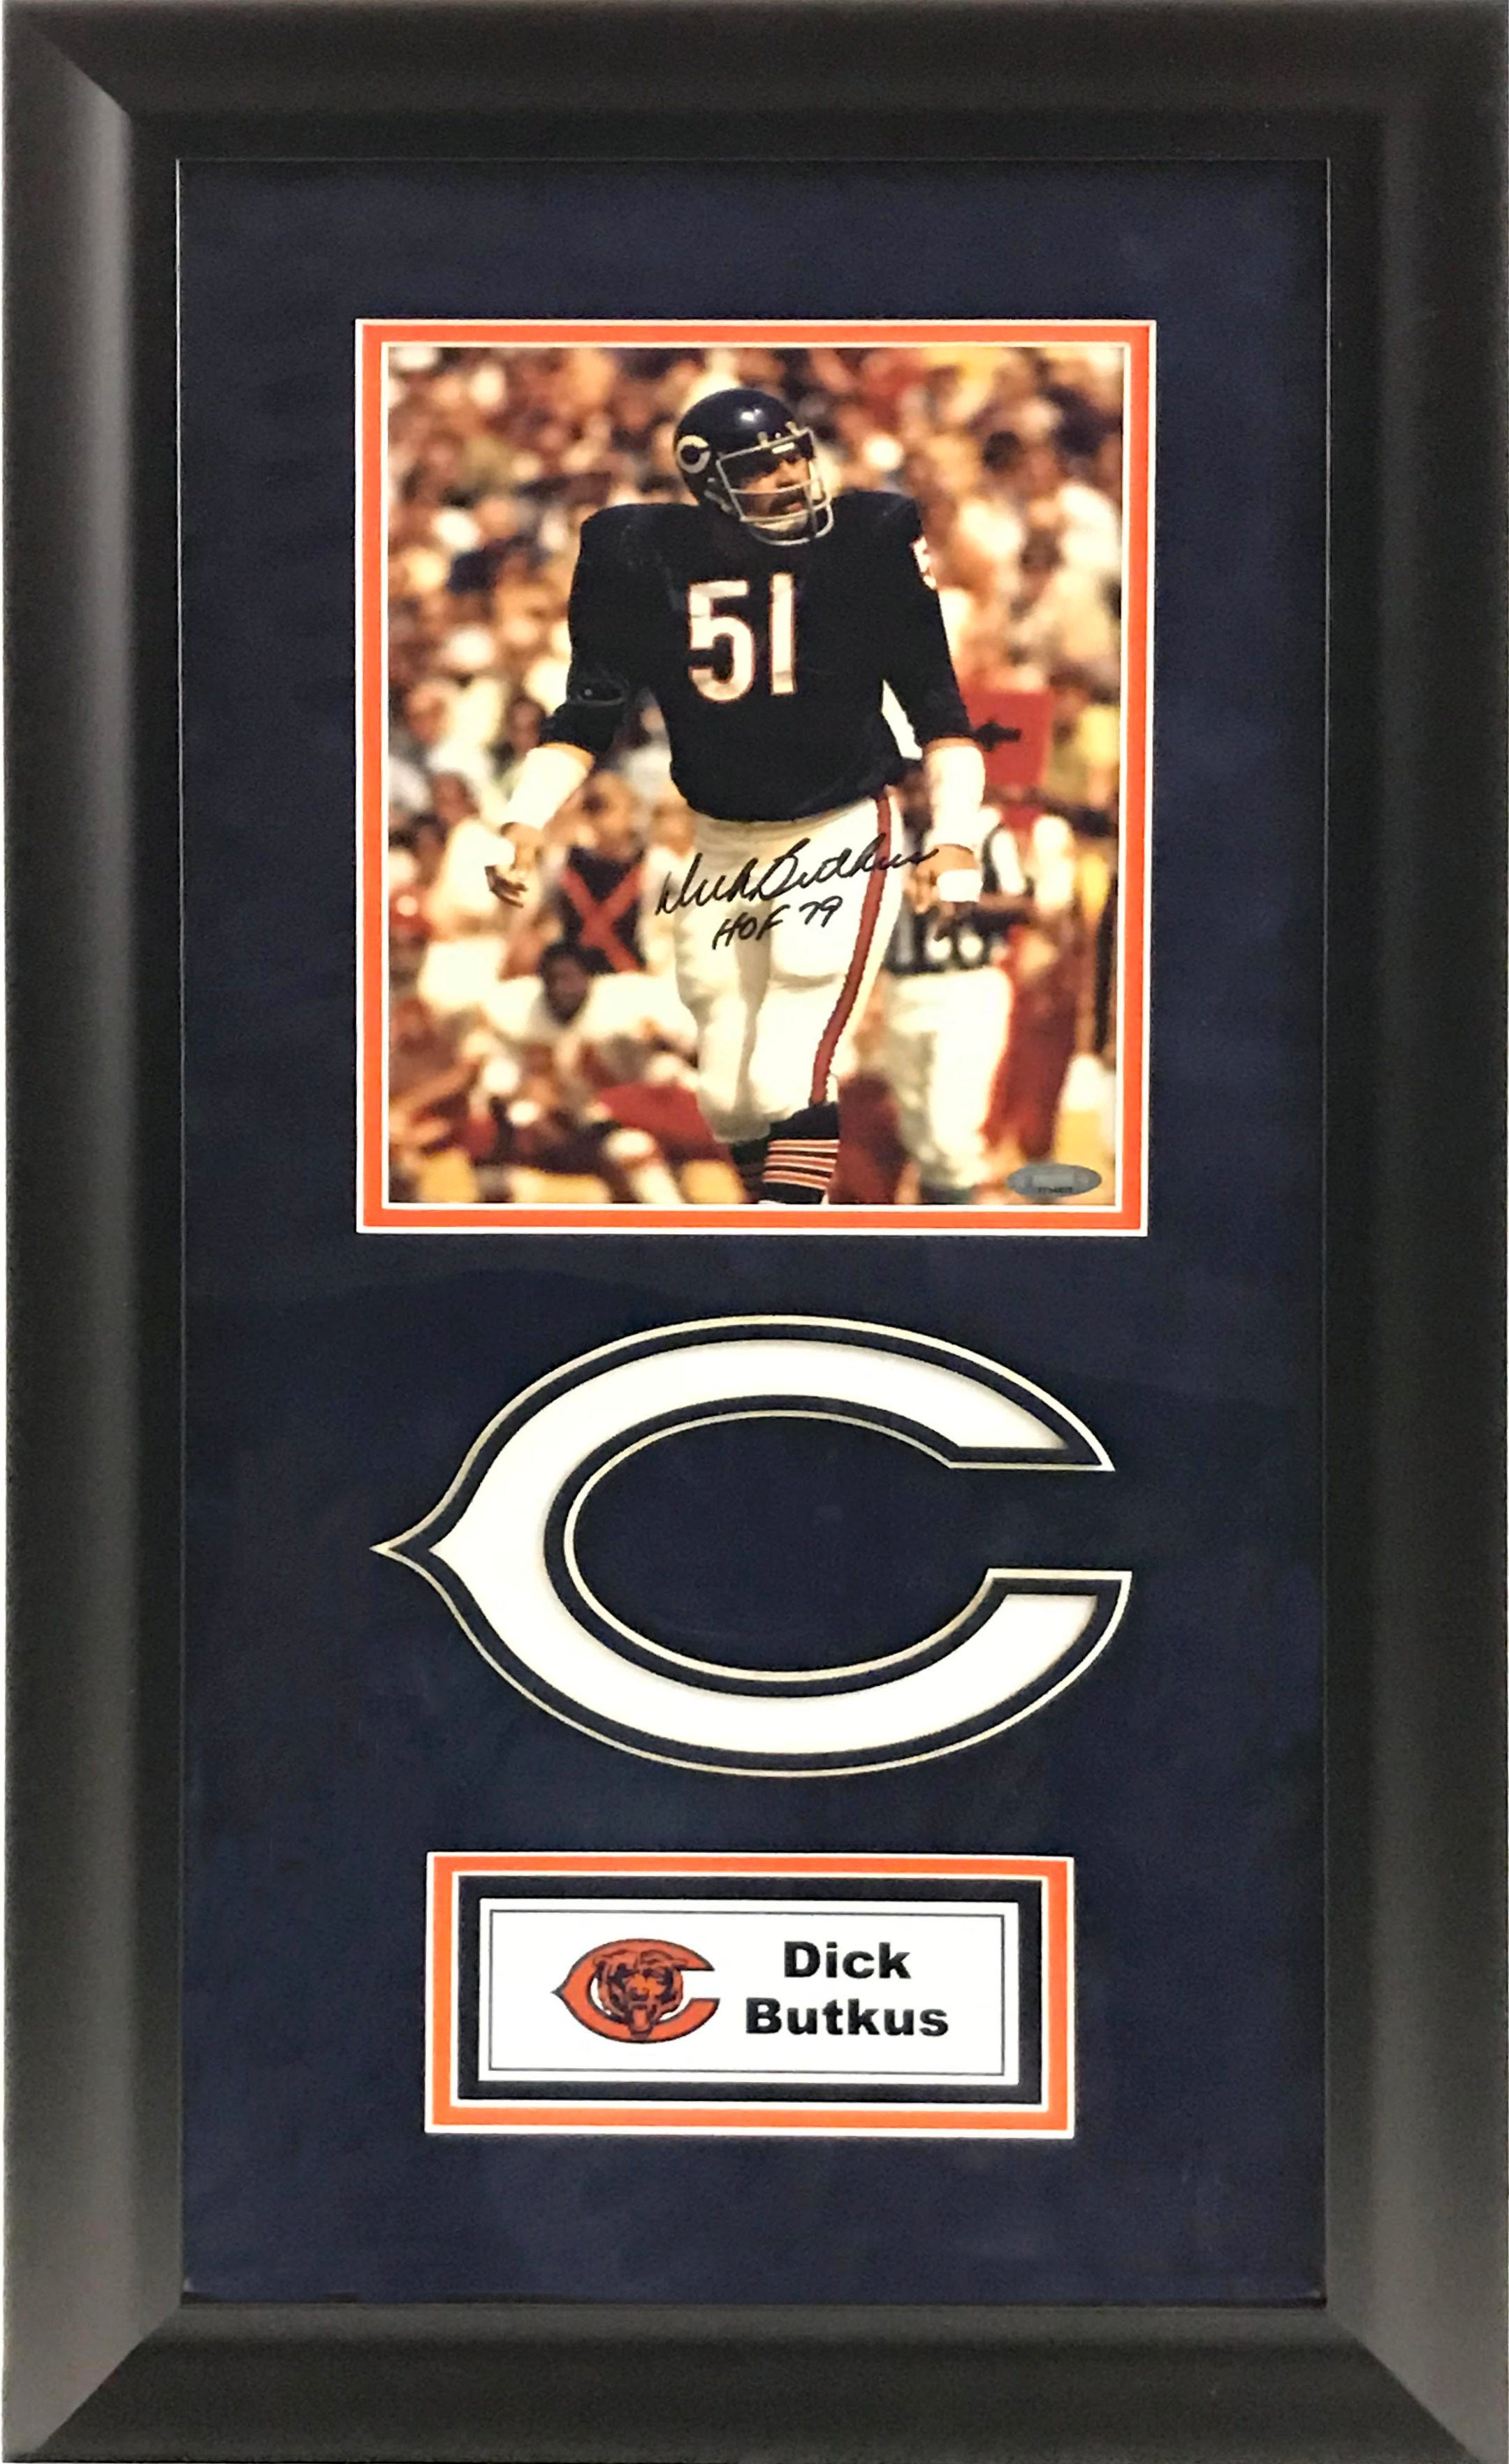 Dick Butkus Signed and Deluxe Framed 8x10 Photo - Latitude Sports Marketing